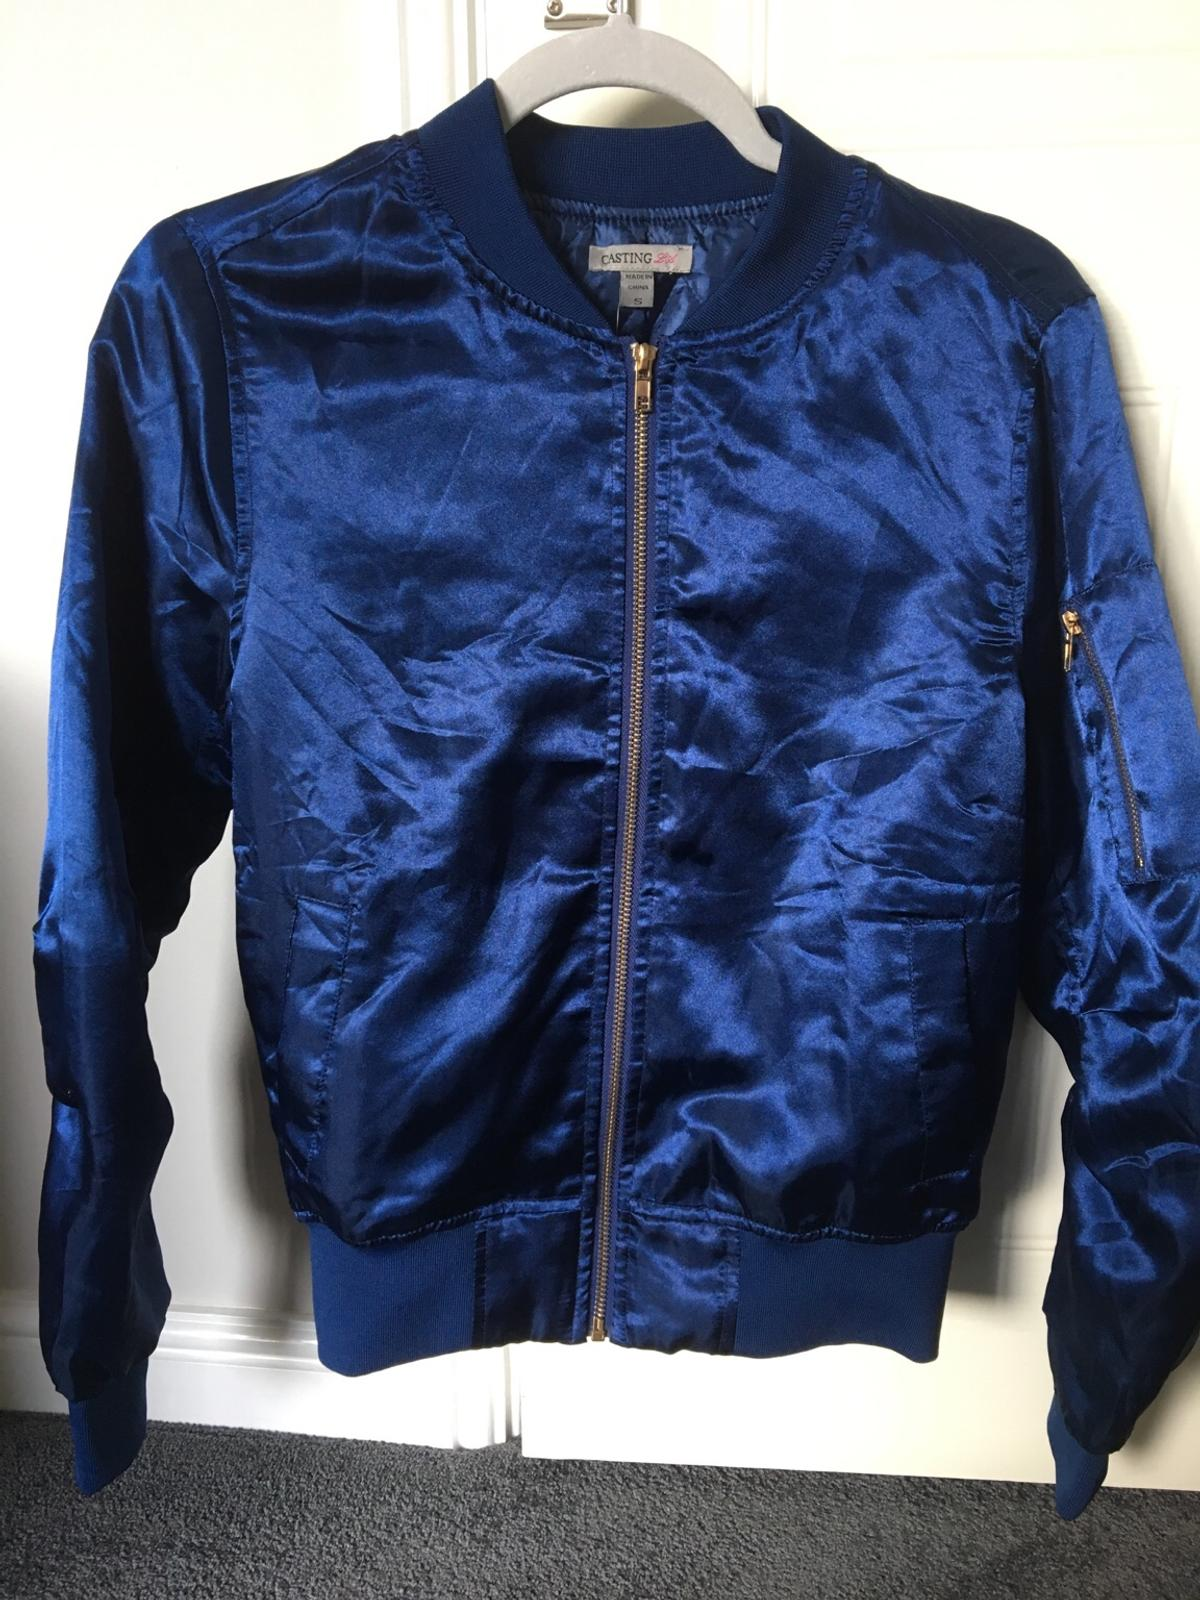 Forever21 Woman's shiny blue jacket. Size Small. Brand New! Tags still attached. £25